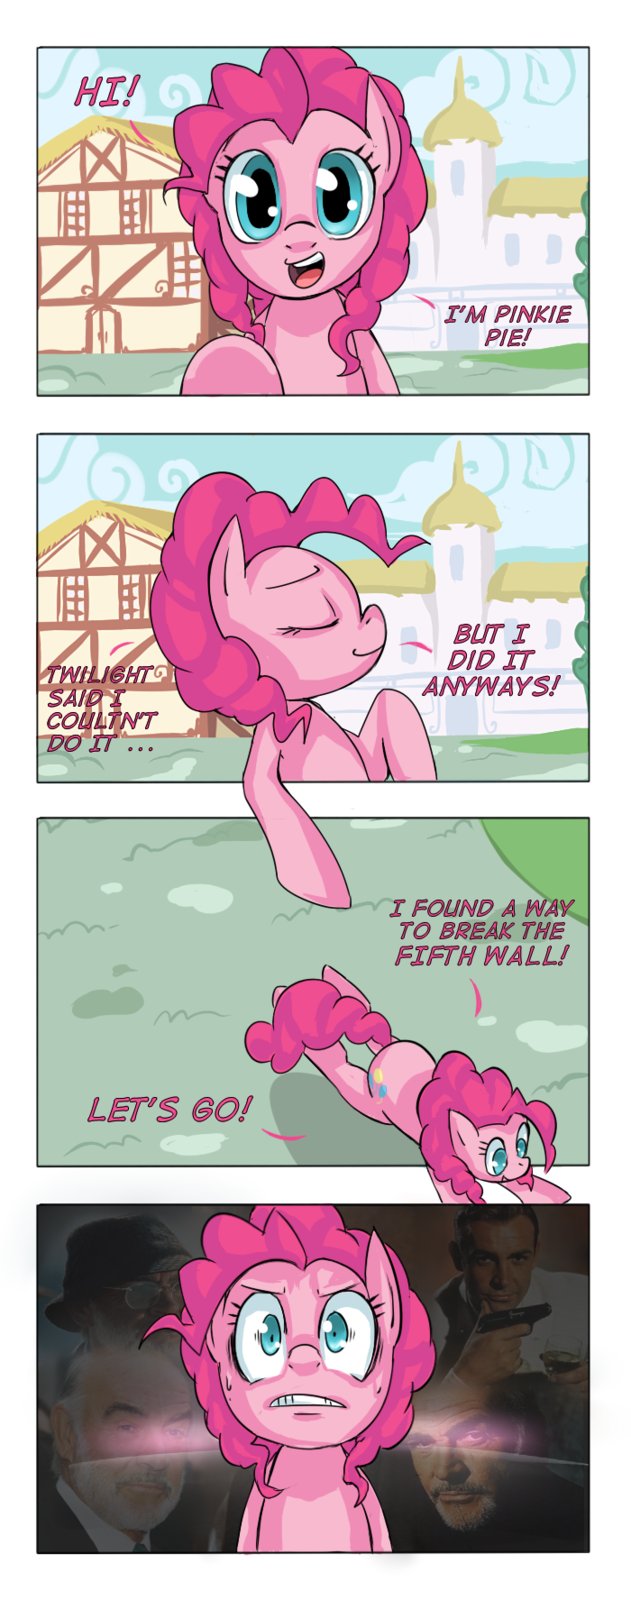 pinkie_pie_vs_the_fifth_wall_by_uc77-d4i5nk4.png